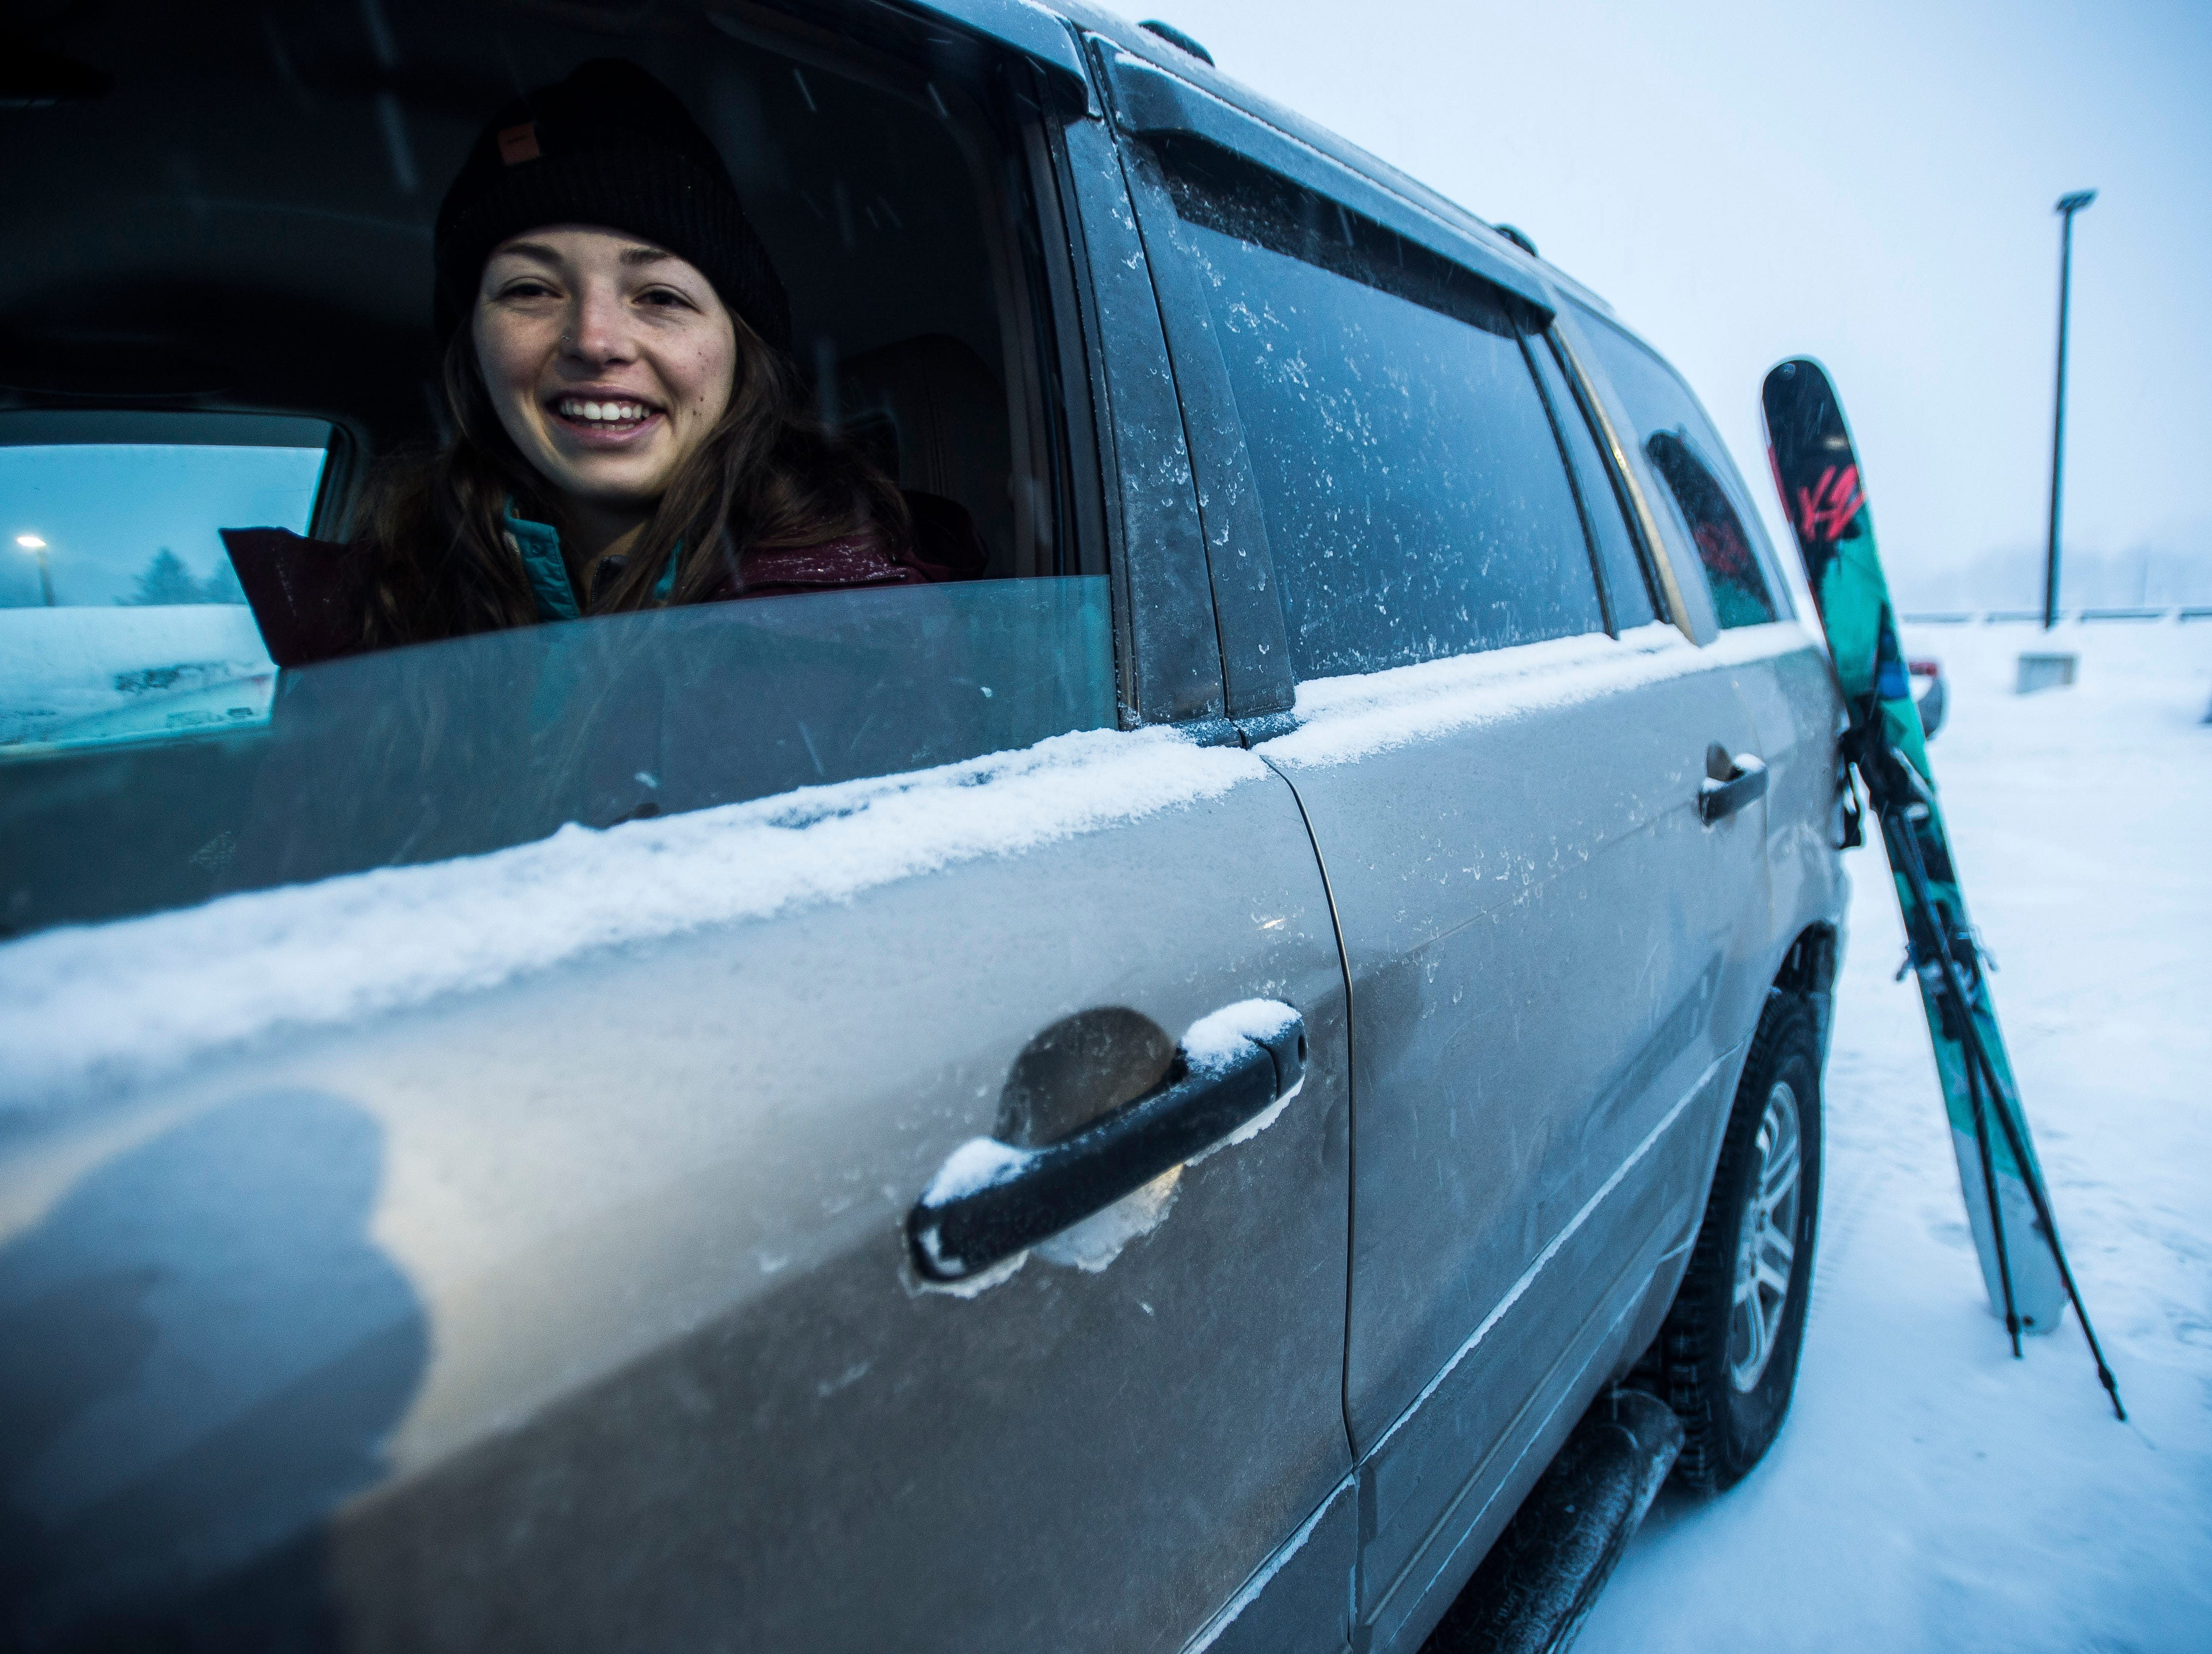 Stephanie Bronsther of Essex Junction, Vermont, is all smiles as she waits for a friend on the morning of Sunday, Jan. 20, 2019. Both planned to head to Sugarbush ski resort as Winter Storm Harper bore down on Vermont, dumping a forecast foot or more of snow in some areas.